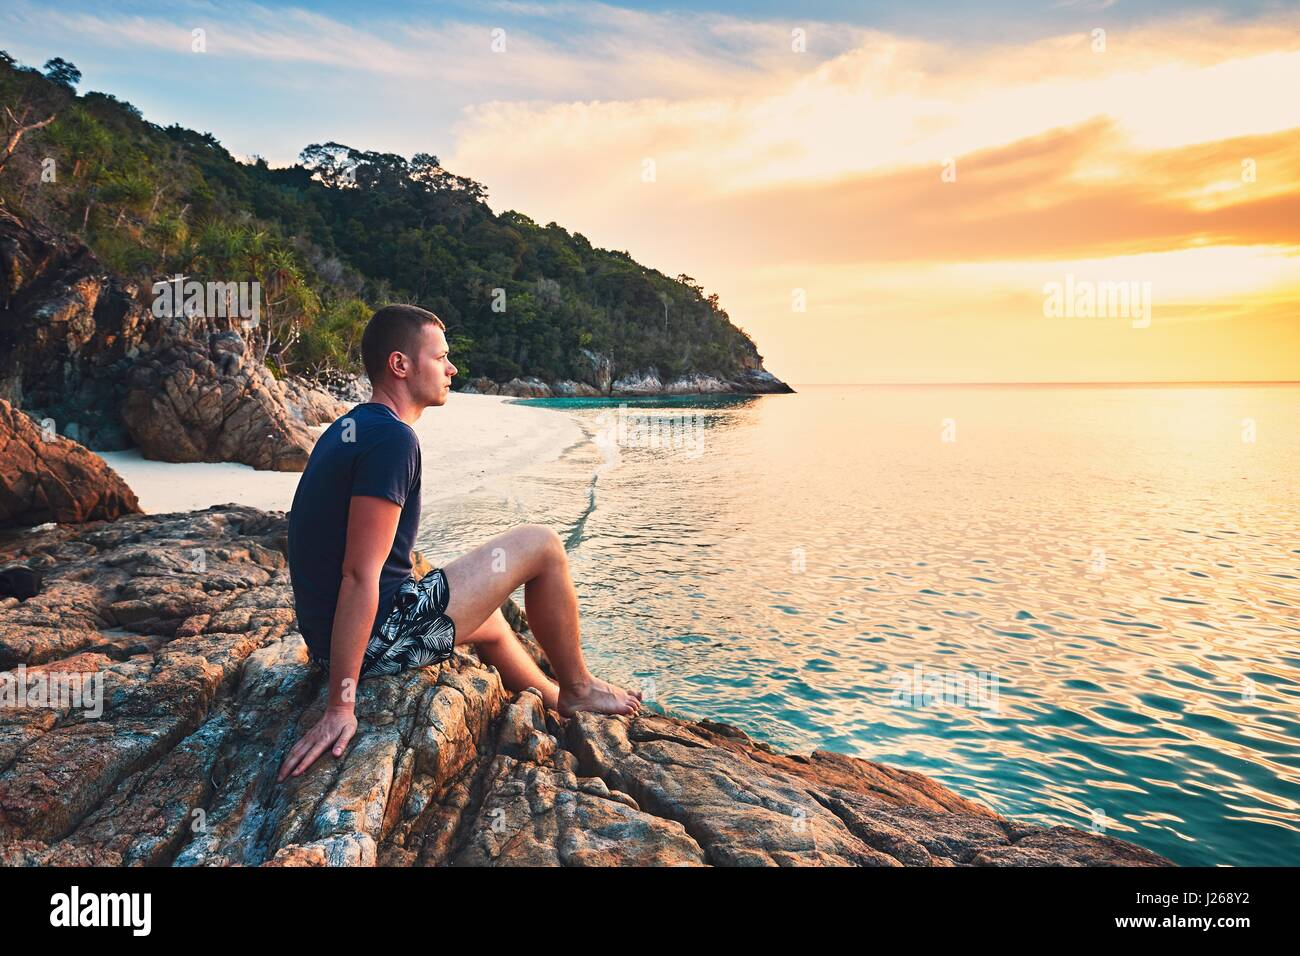 Contemplation at the sunset. Alone young man on the beautiful sand beach. - Stock Image